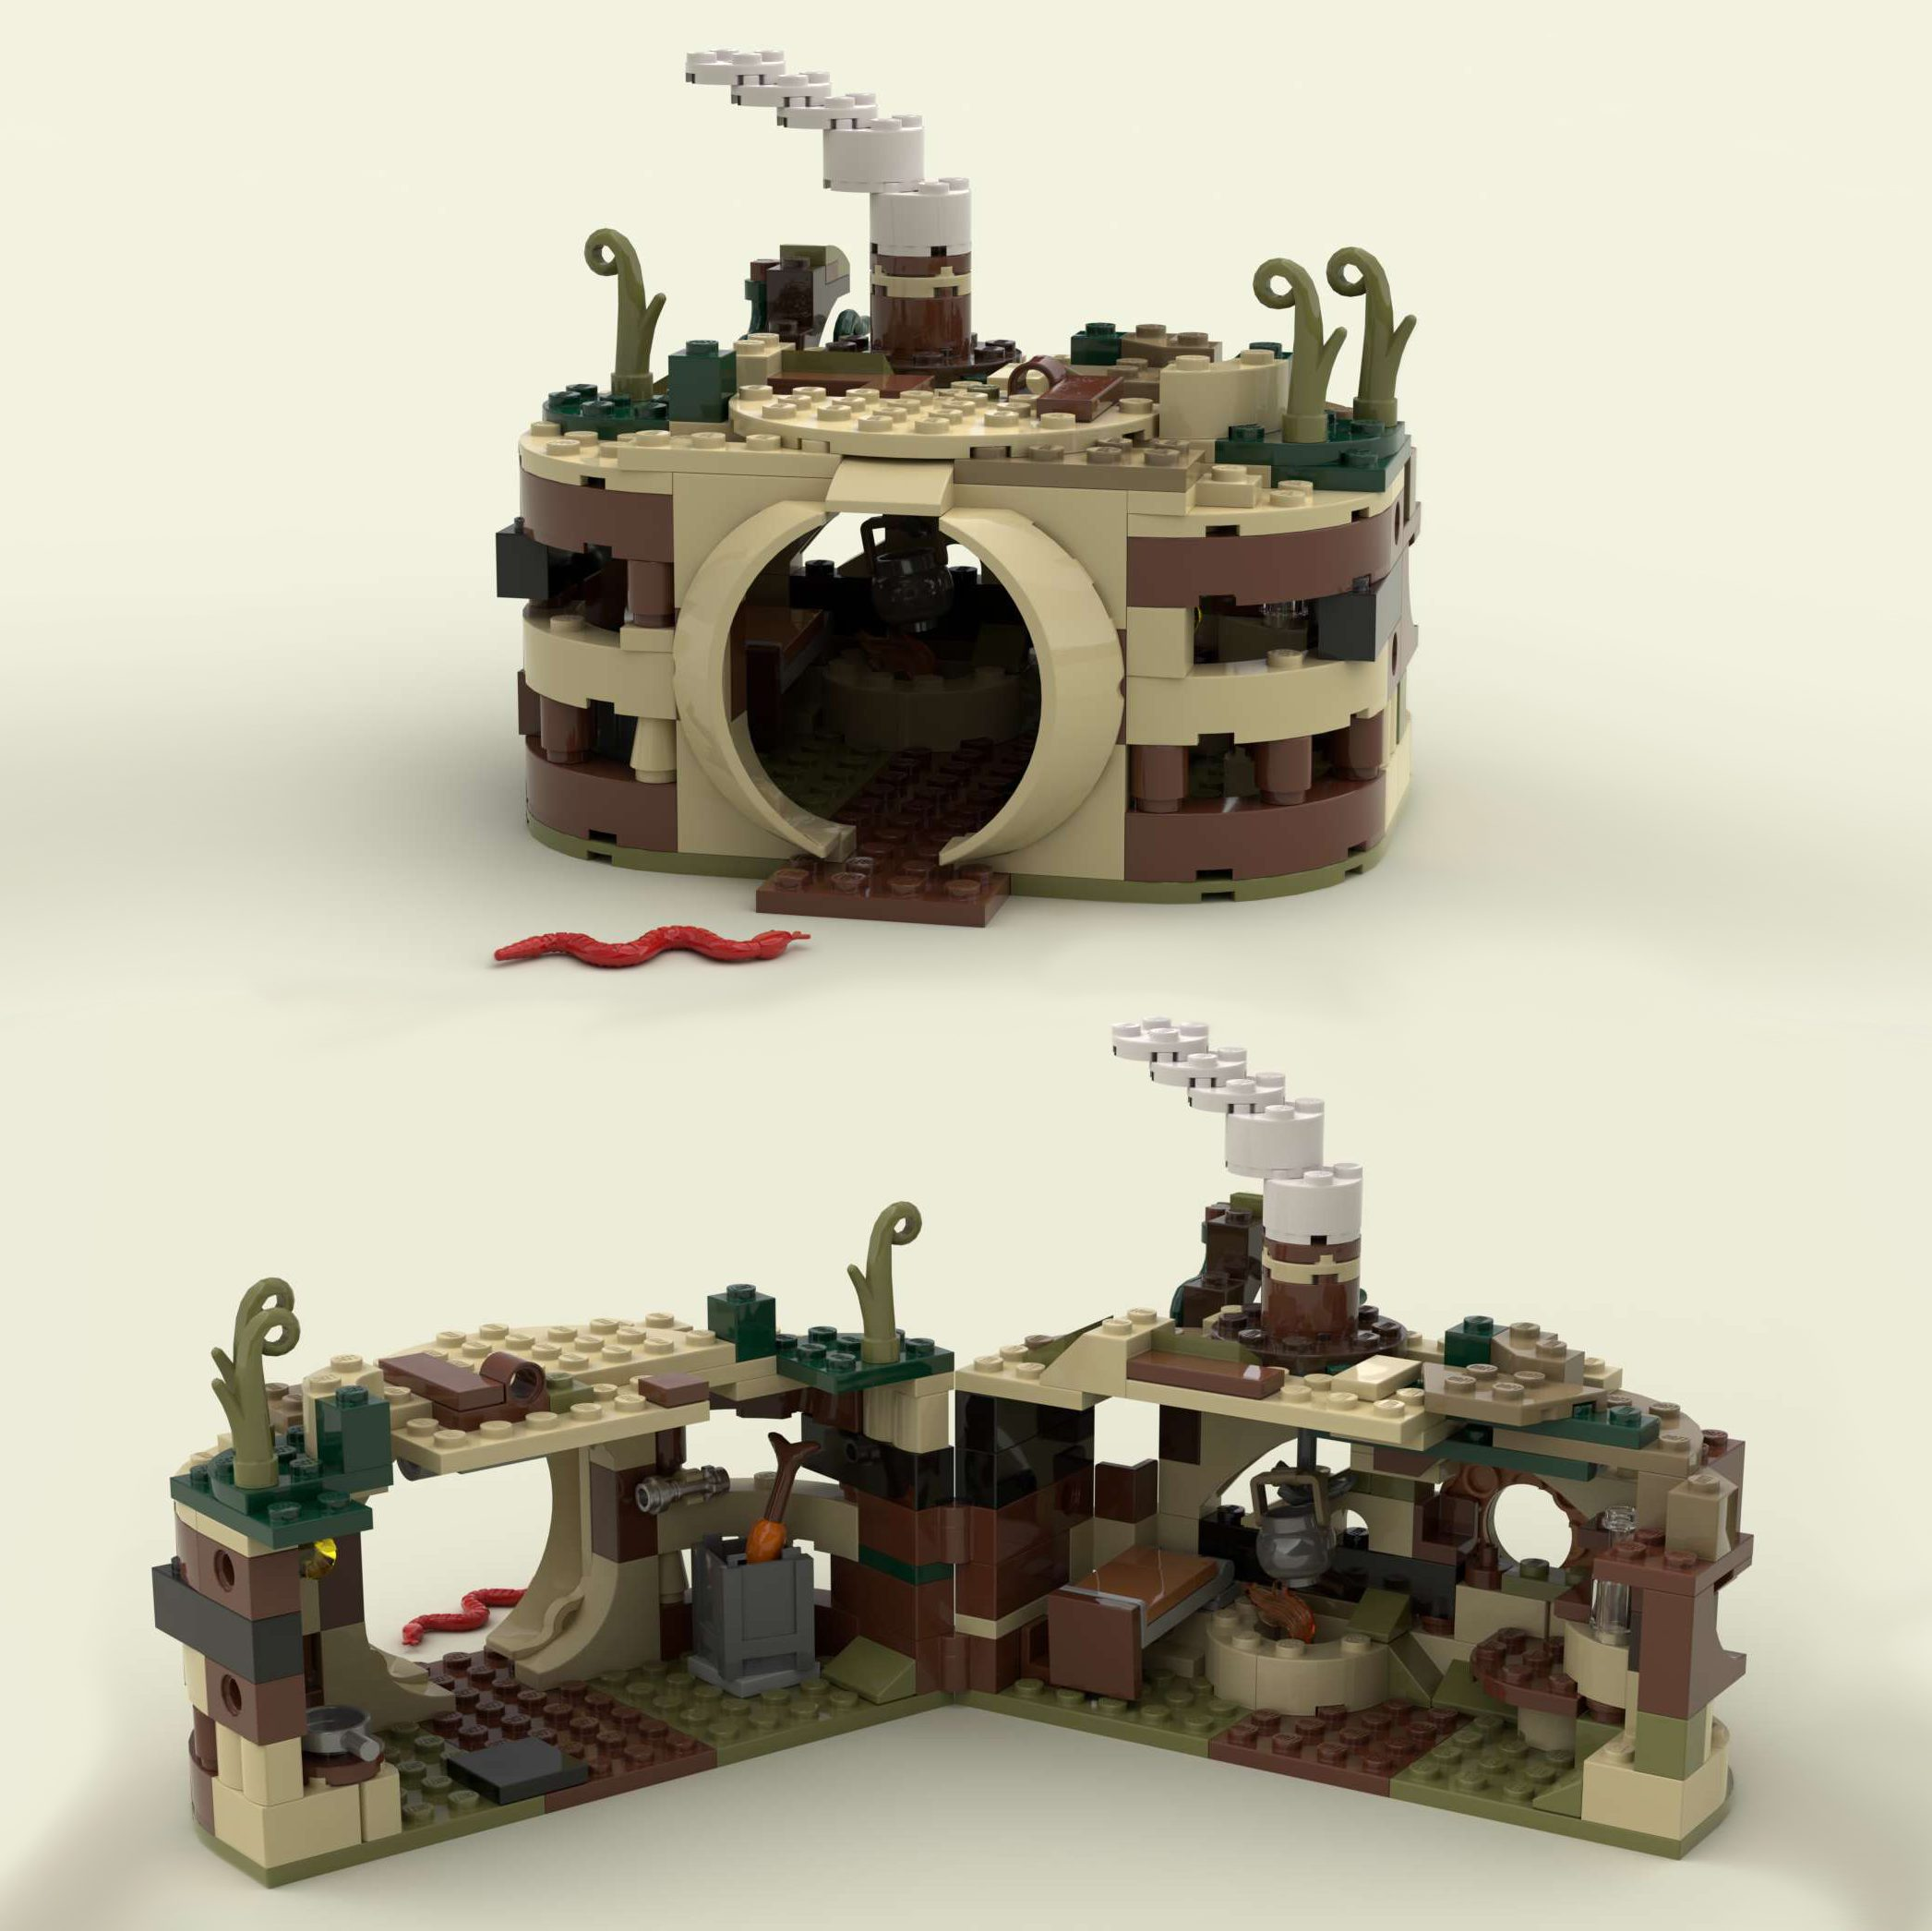 Lego 75208 - Alternative Build: Swamp-hut